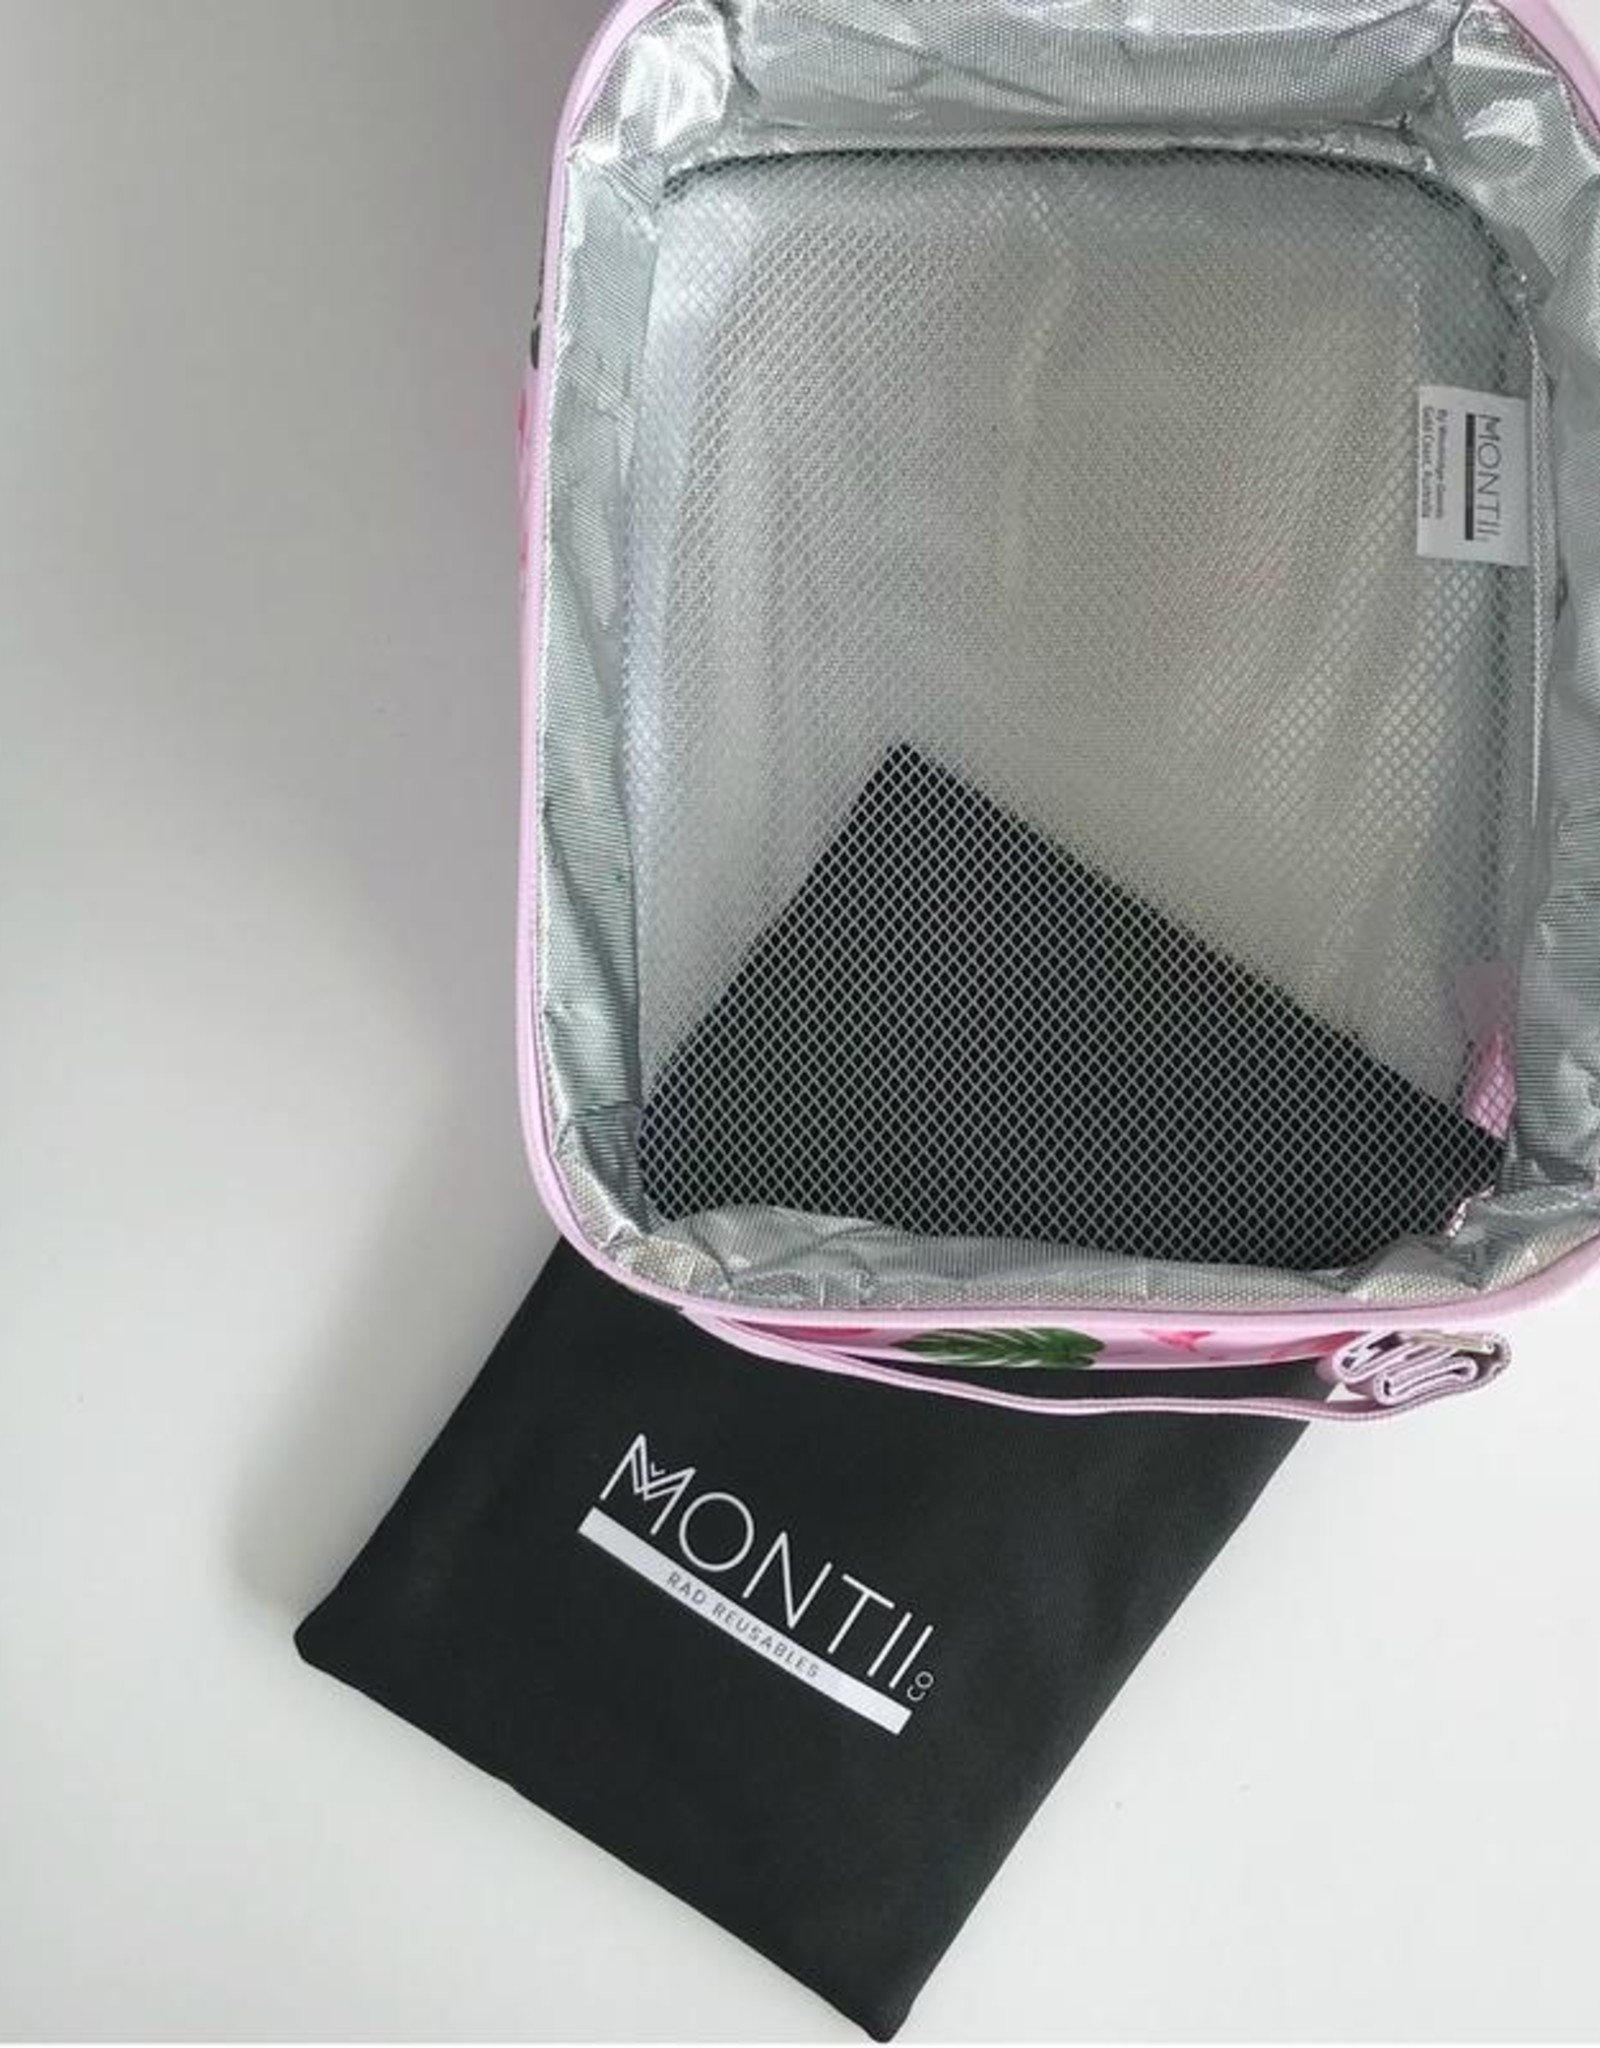 Montii Lunchtas galaxy (inclusief ice pack)